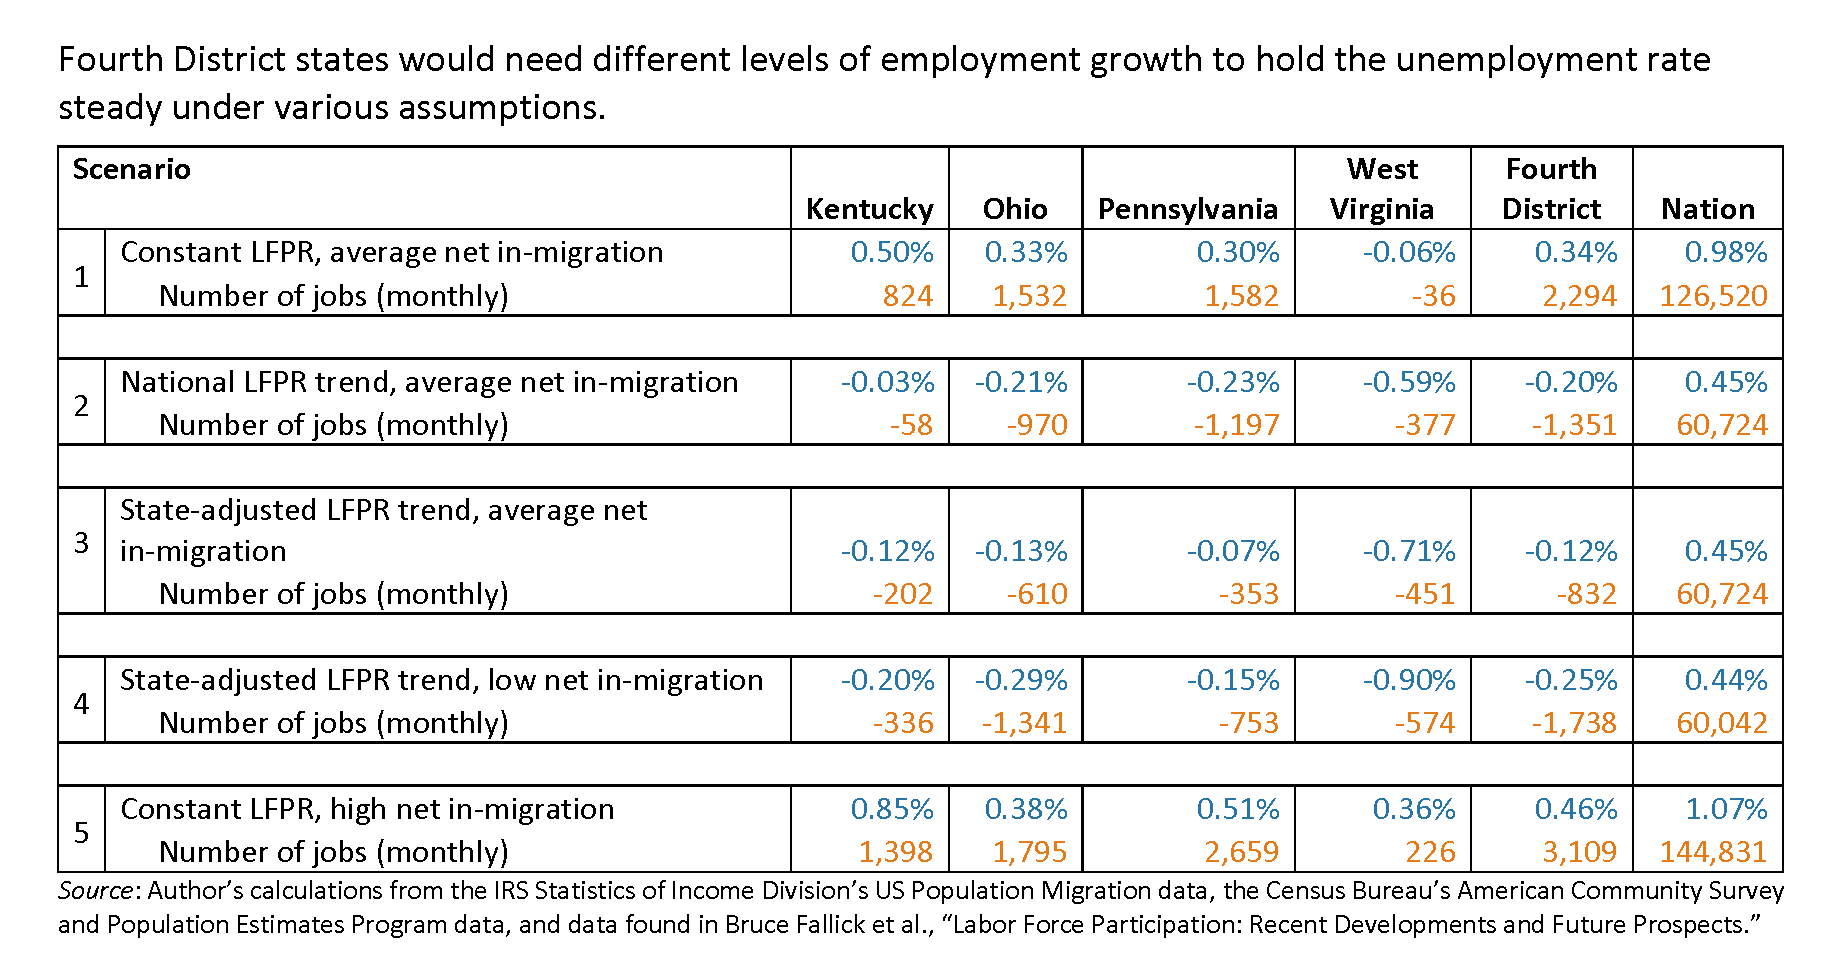 Fourth District states would need different levels of employment growth to hold the unemployment rate steady under various assumptions.